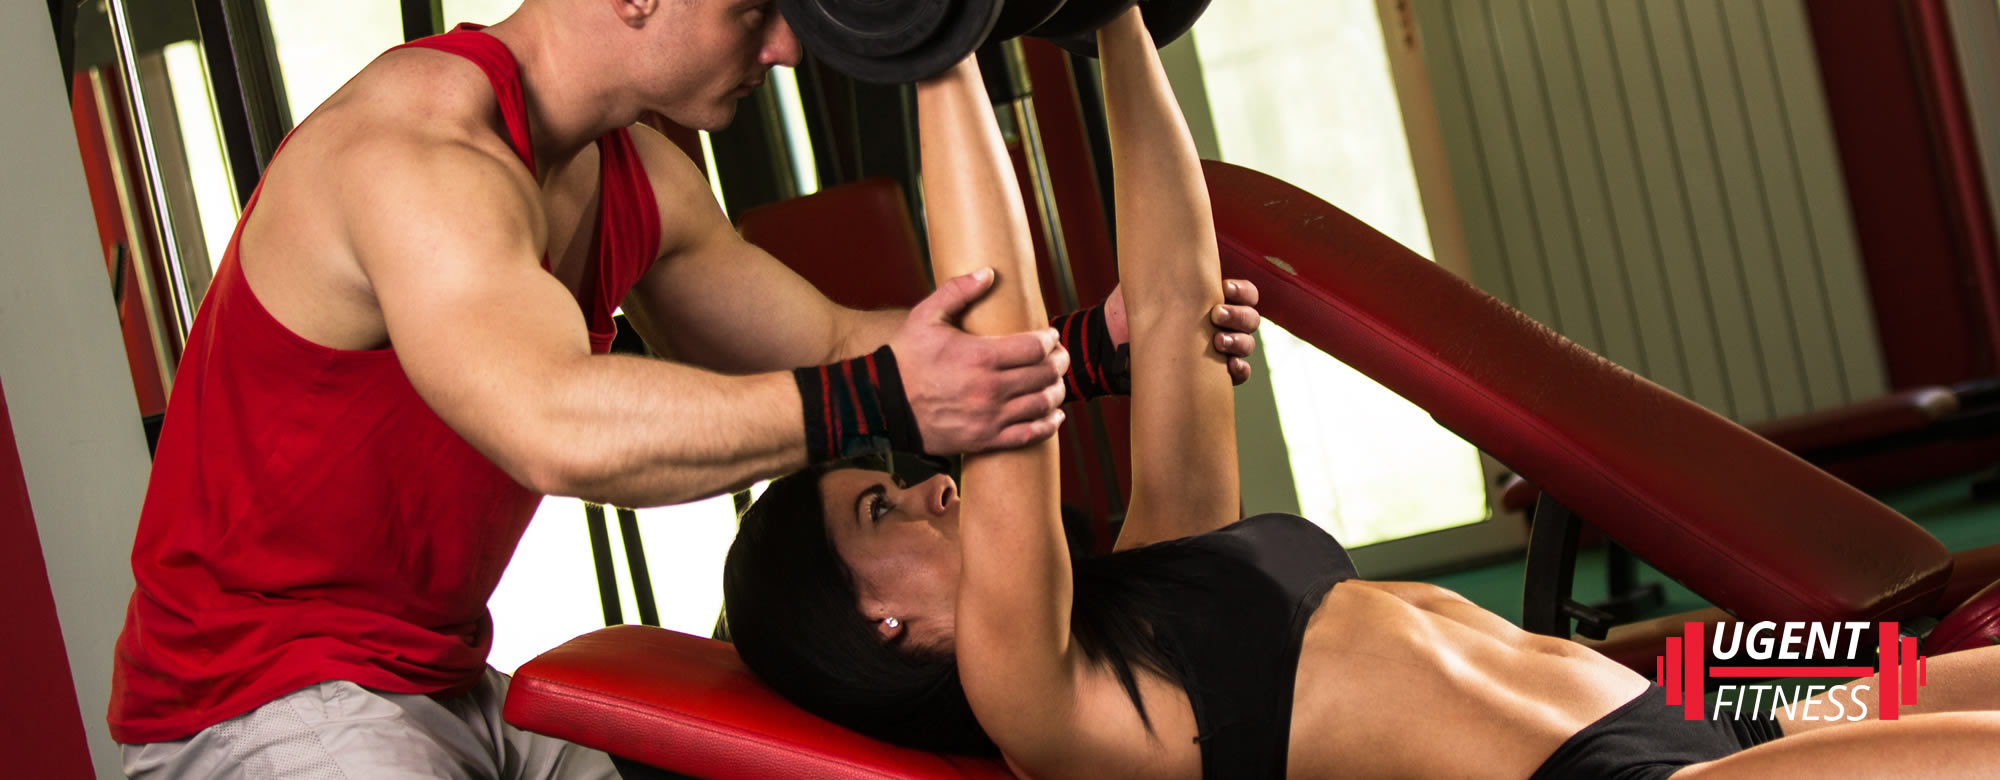 Ugent Fitness Personal Trainer in Westchester, Glenvar Heights, East Kendall, Coral Terrace